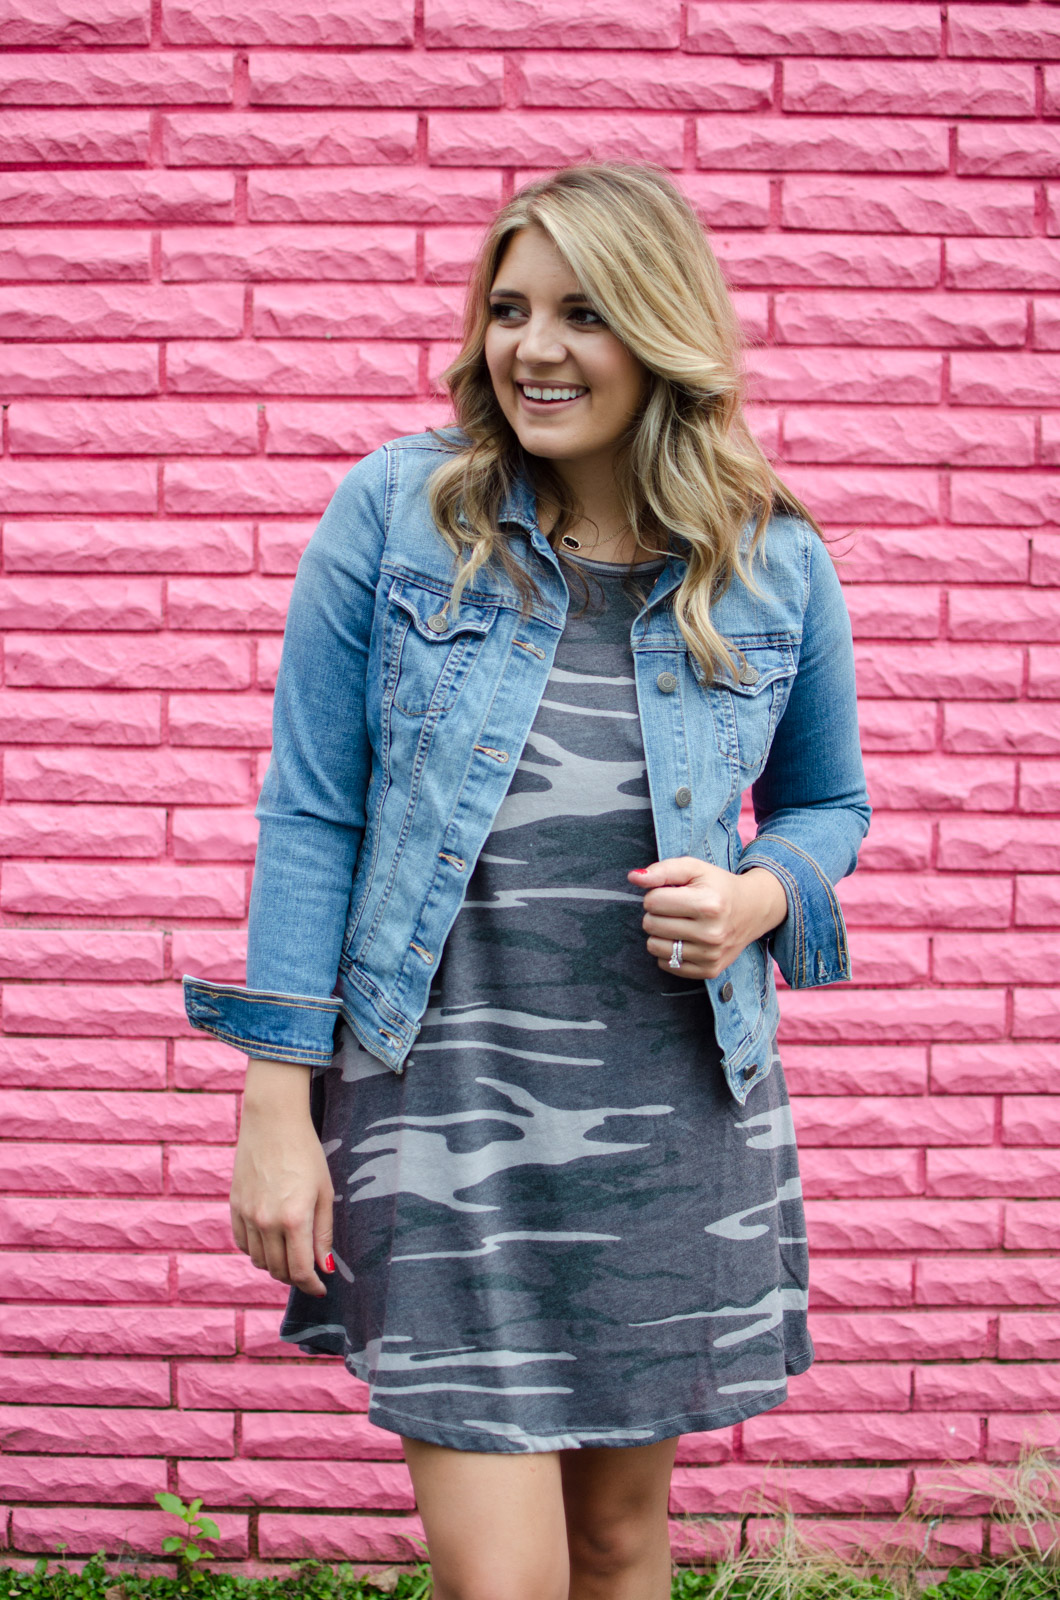 early fall outfit - camo tshirt dress | For more cute Fall outfits, go to bylaurenm.com!